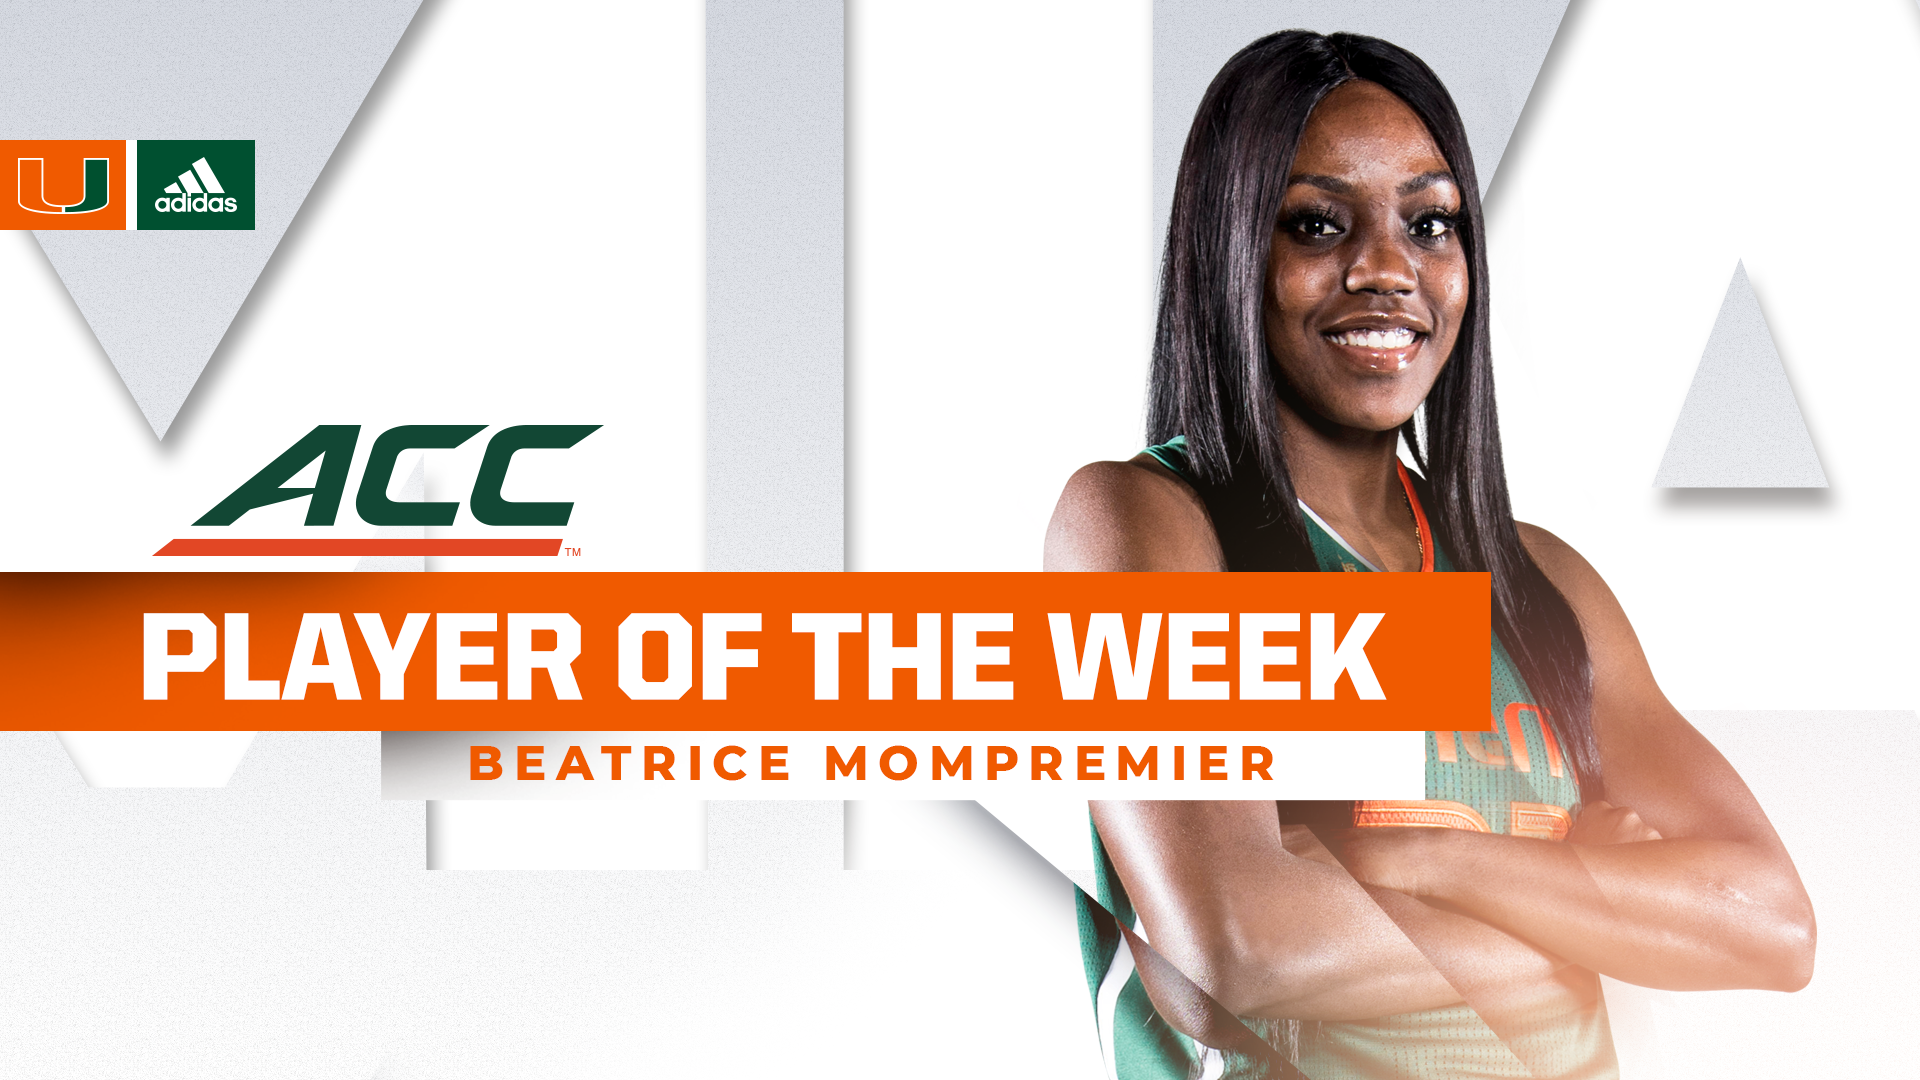 Mompremier Named ACC Player of the Week